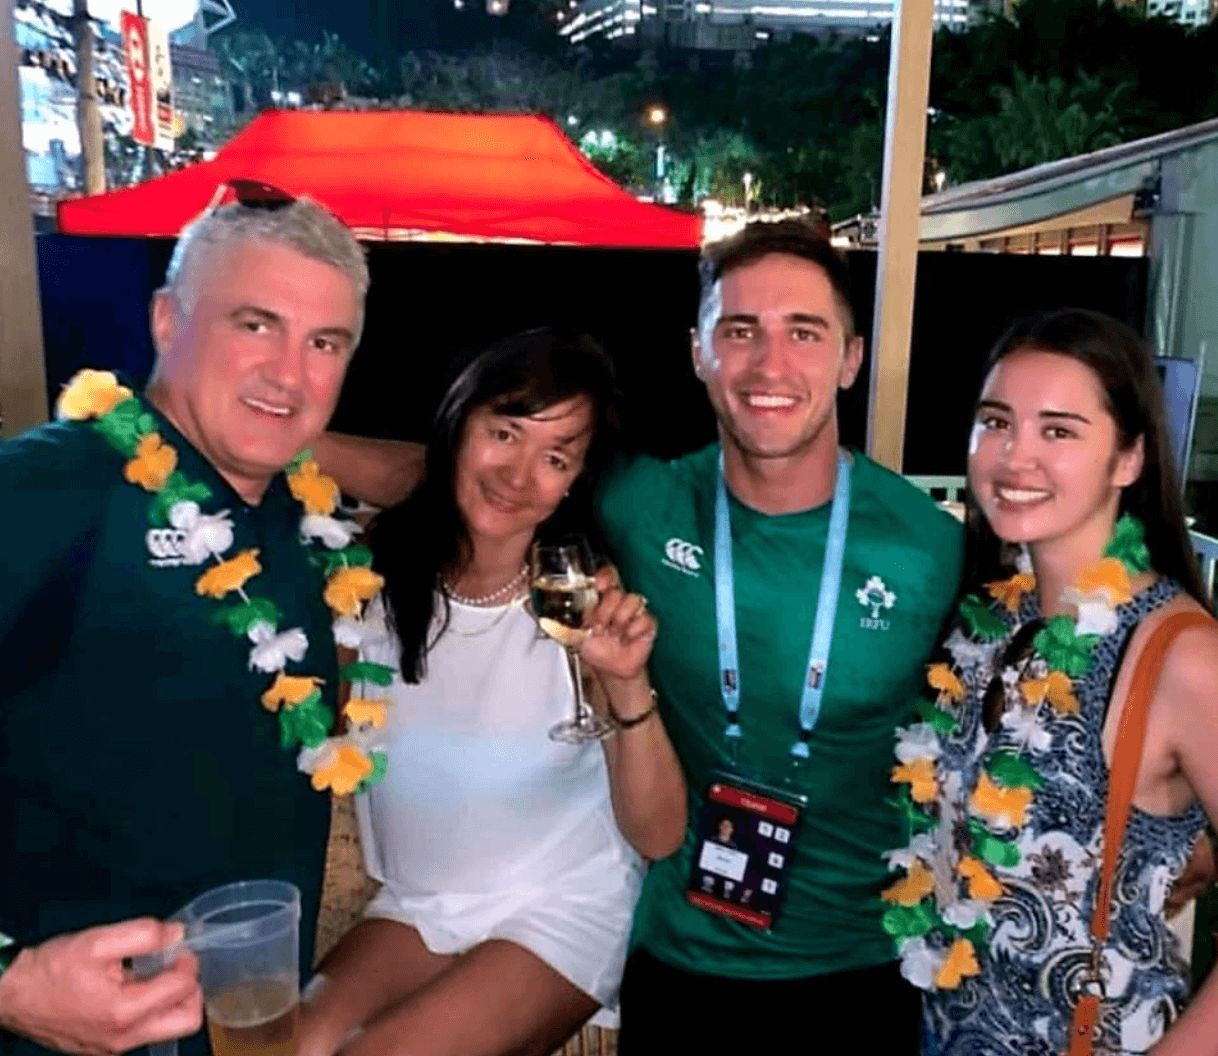 Image may contain: Love Island parents, Love Island, mum, dad, Greg, Lauren O'Shea, Niall, sister, Accessories, Sunglasses, Accessory, Lighting, Human, Flower Arrangement, Person, Flower, Blossom, Lei, Plant, Ornament